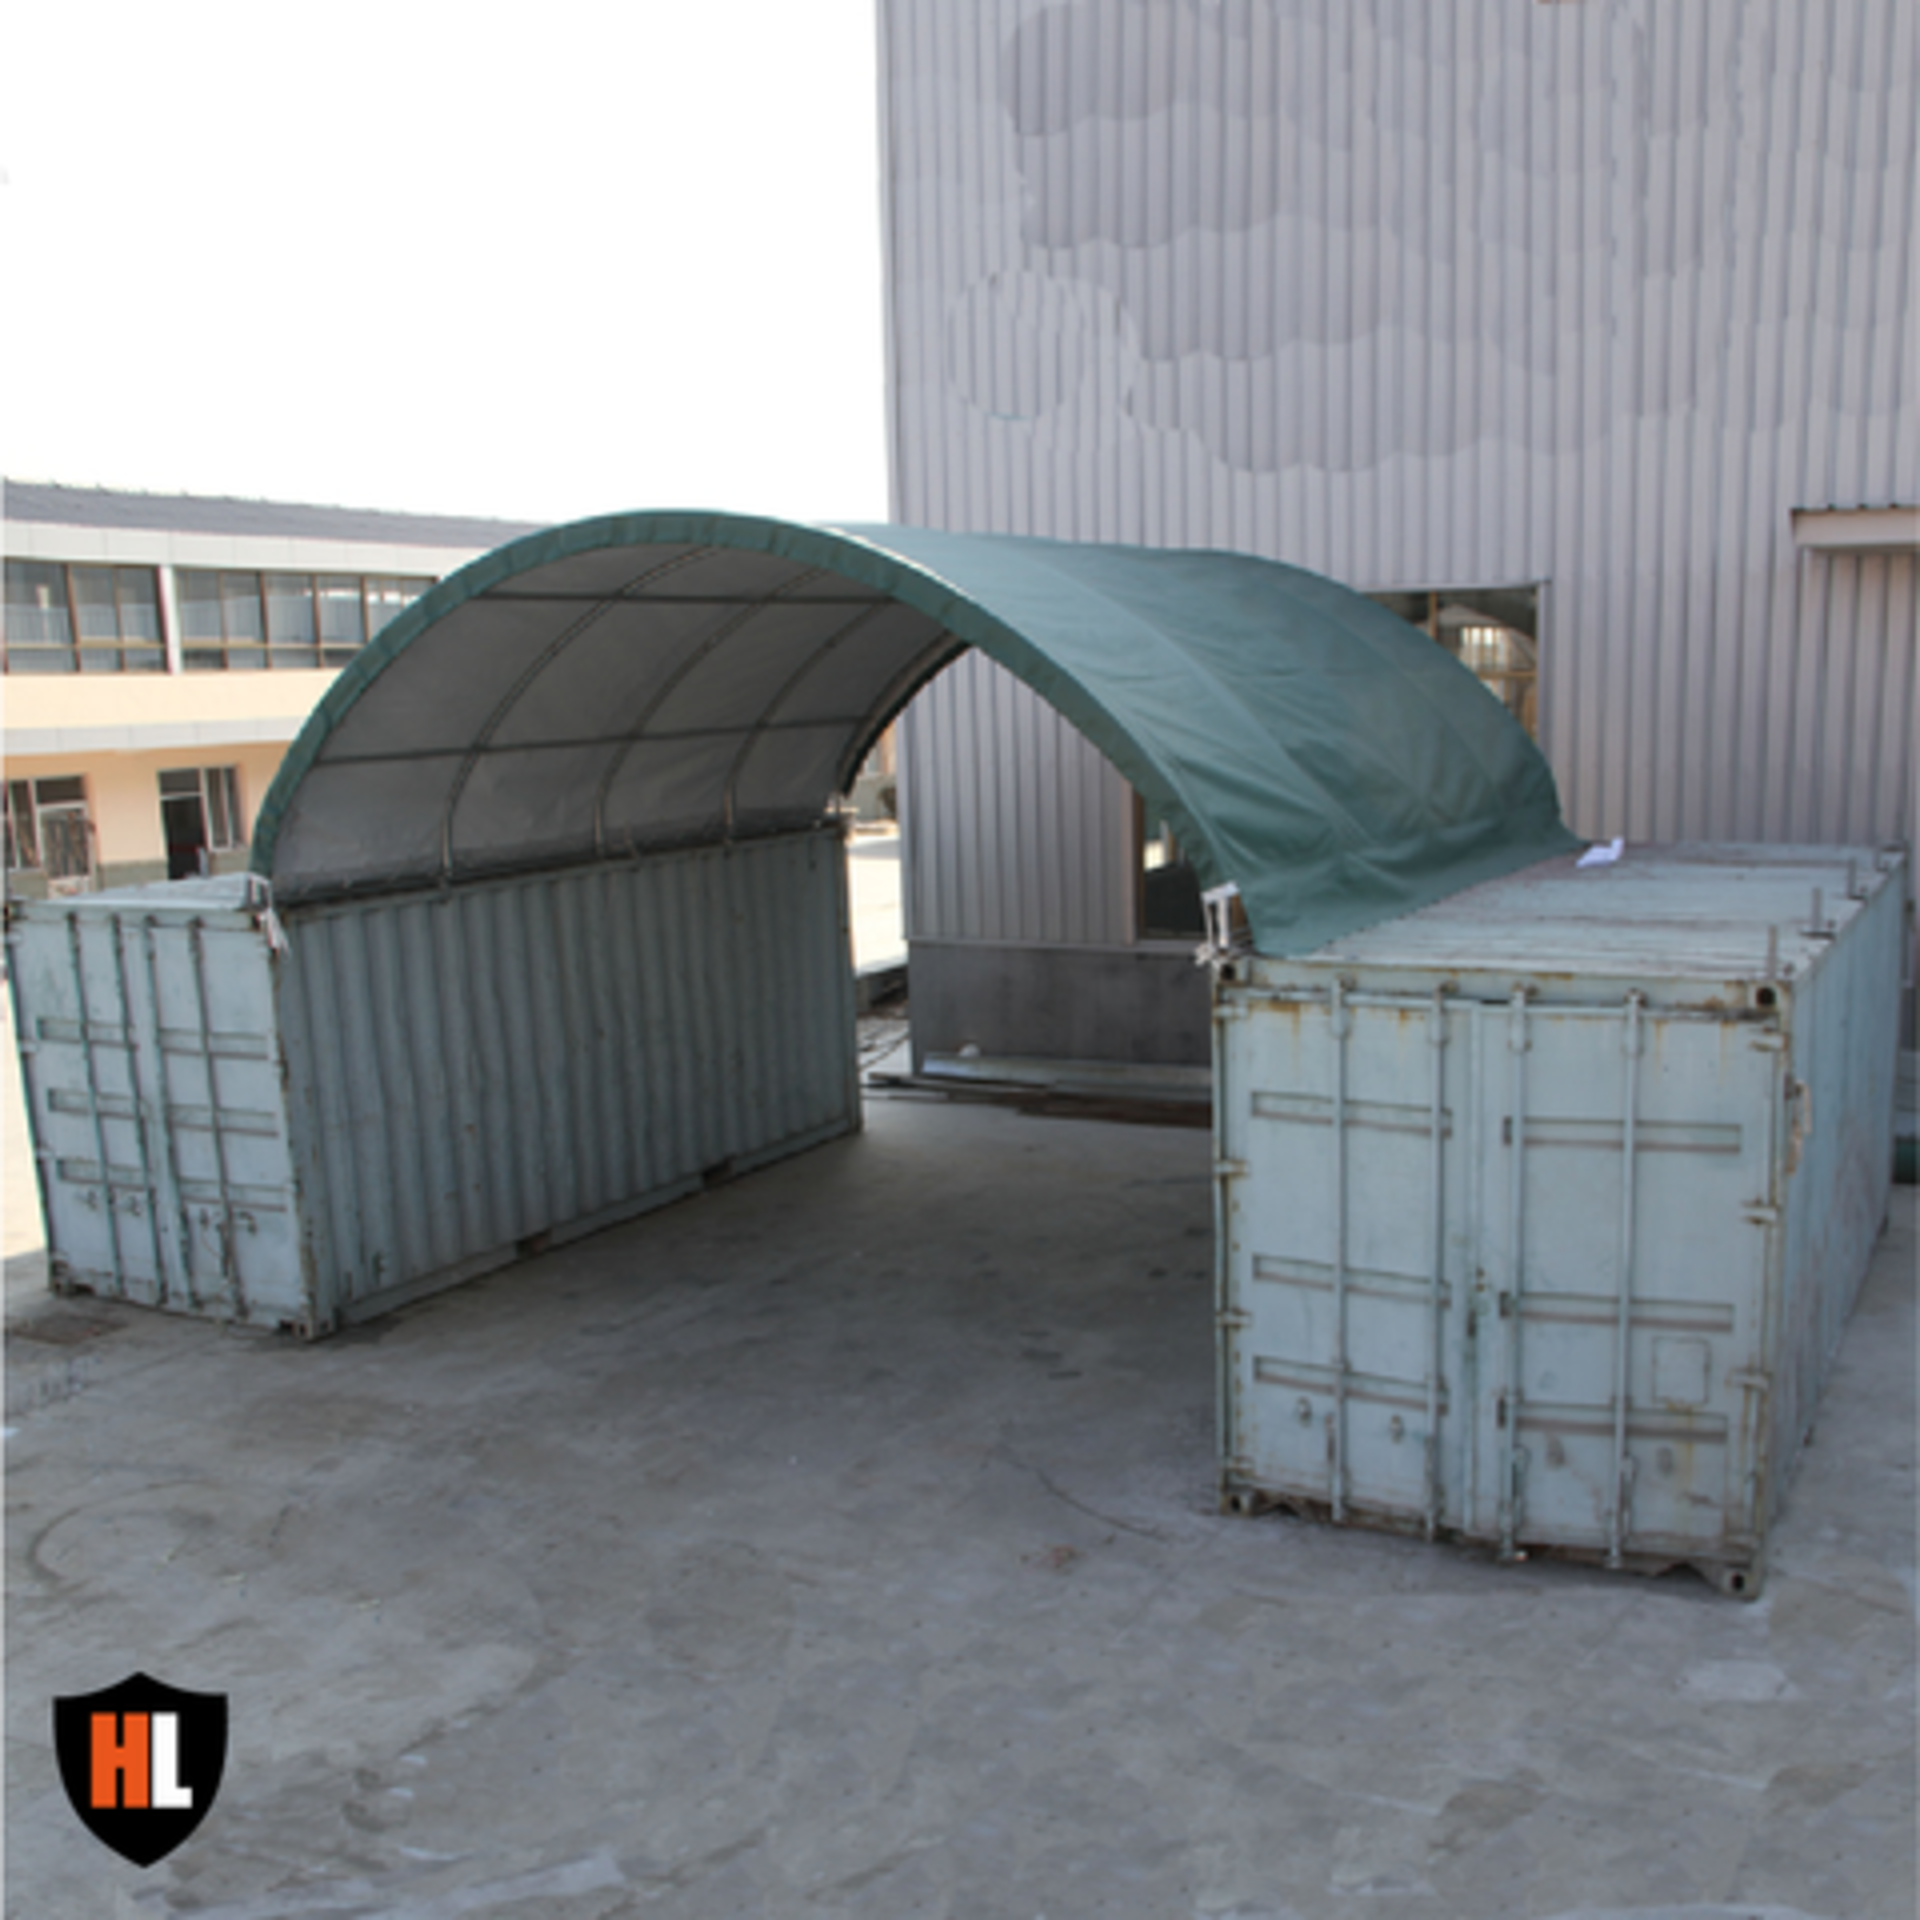 "Lot 23 - Container Shelter 20'W x 20'L x 6'6"" H P/No C2020"